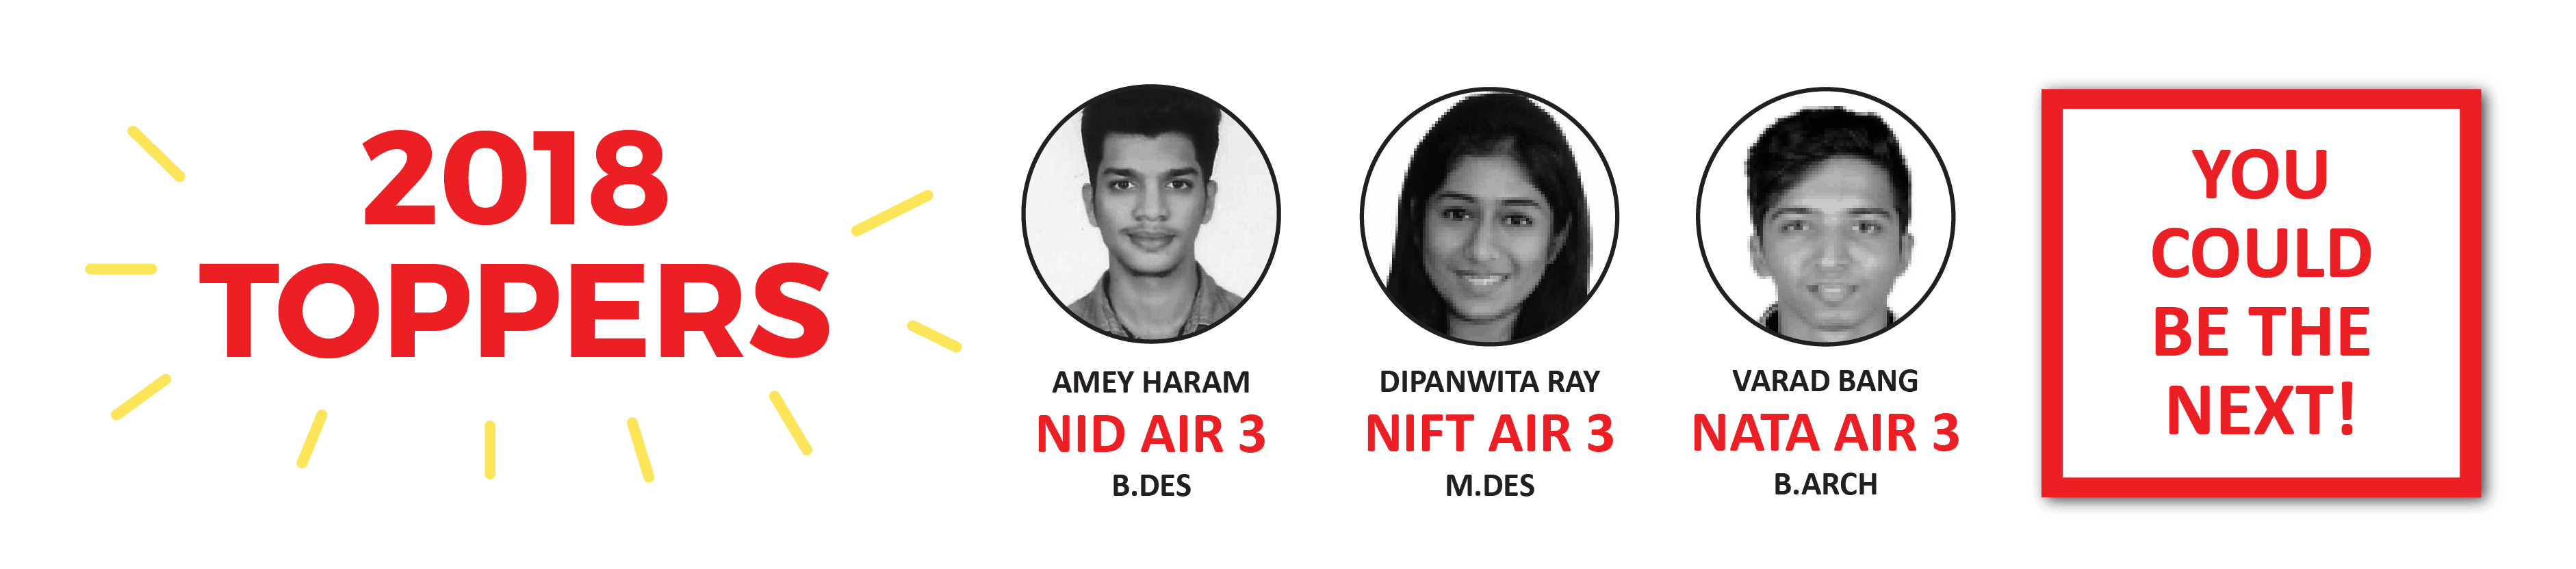 NID/NIFT/NATA toppers 2018 From SILICA